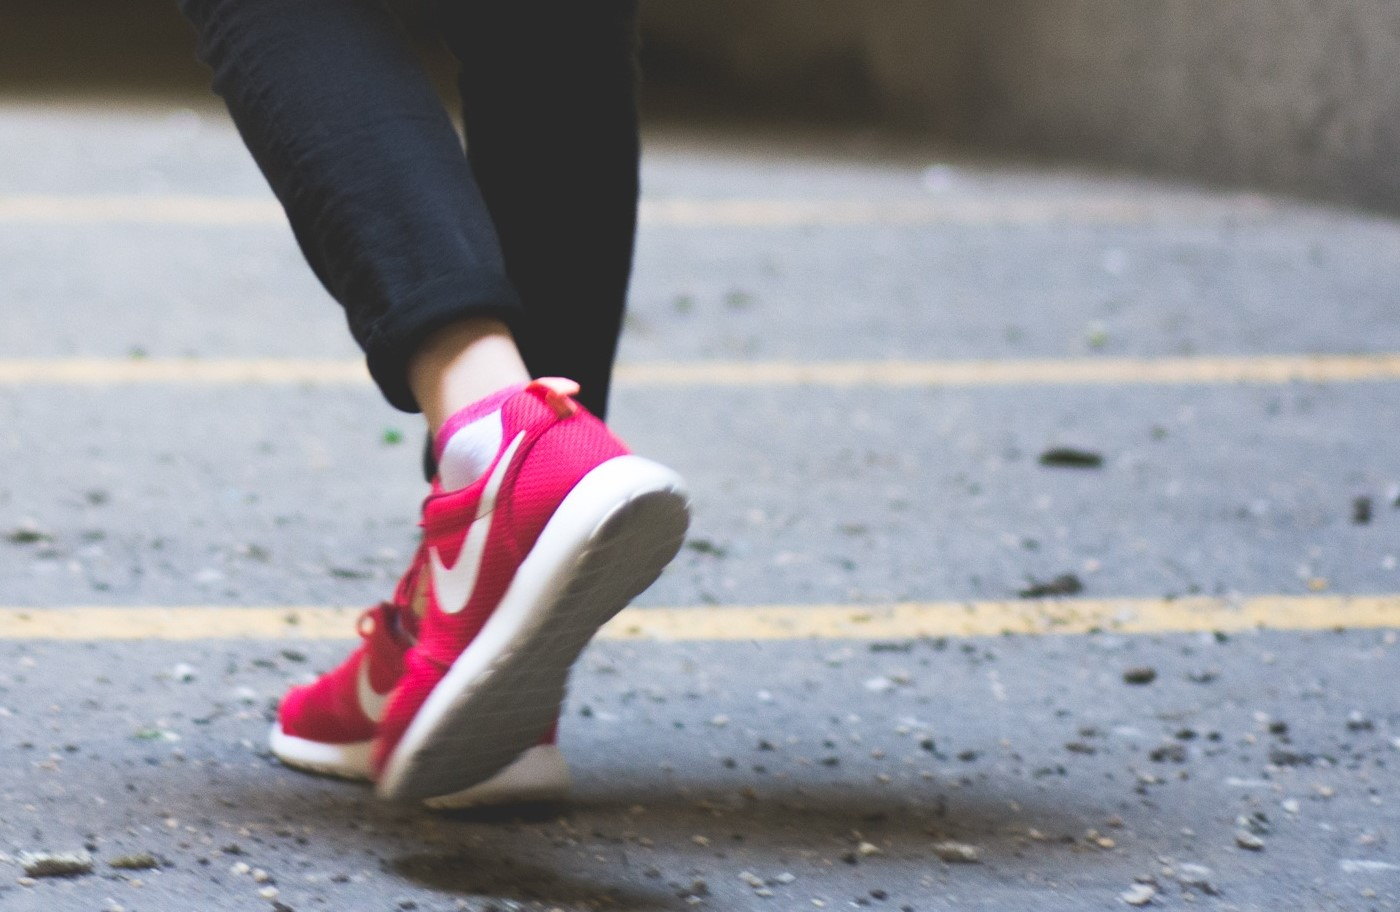 Walking faster could make you live longer: research